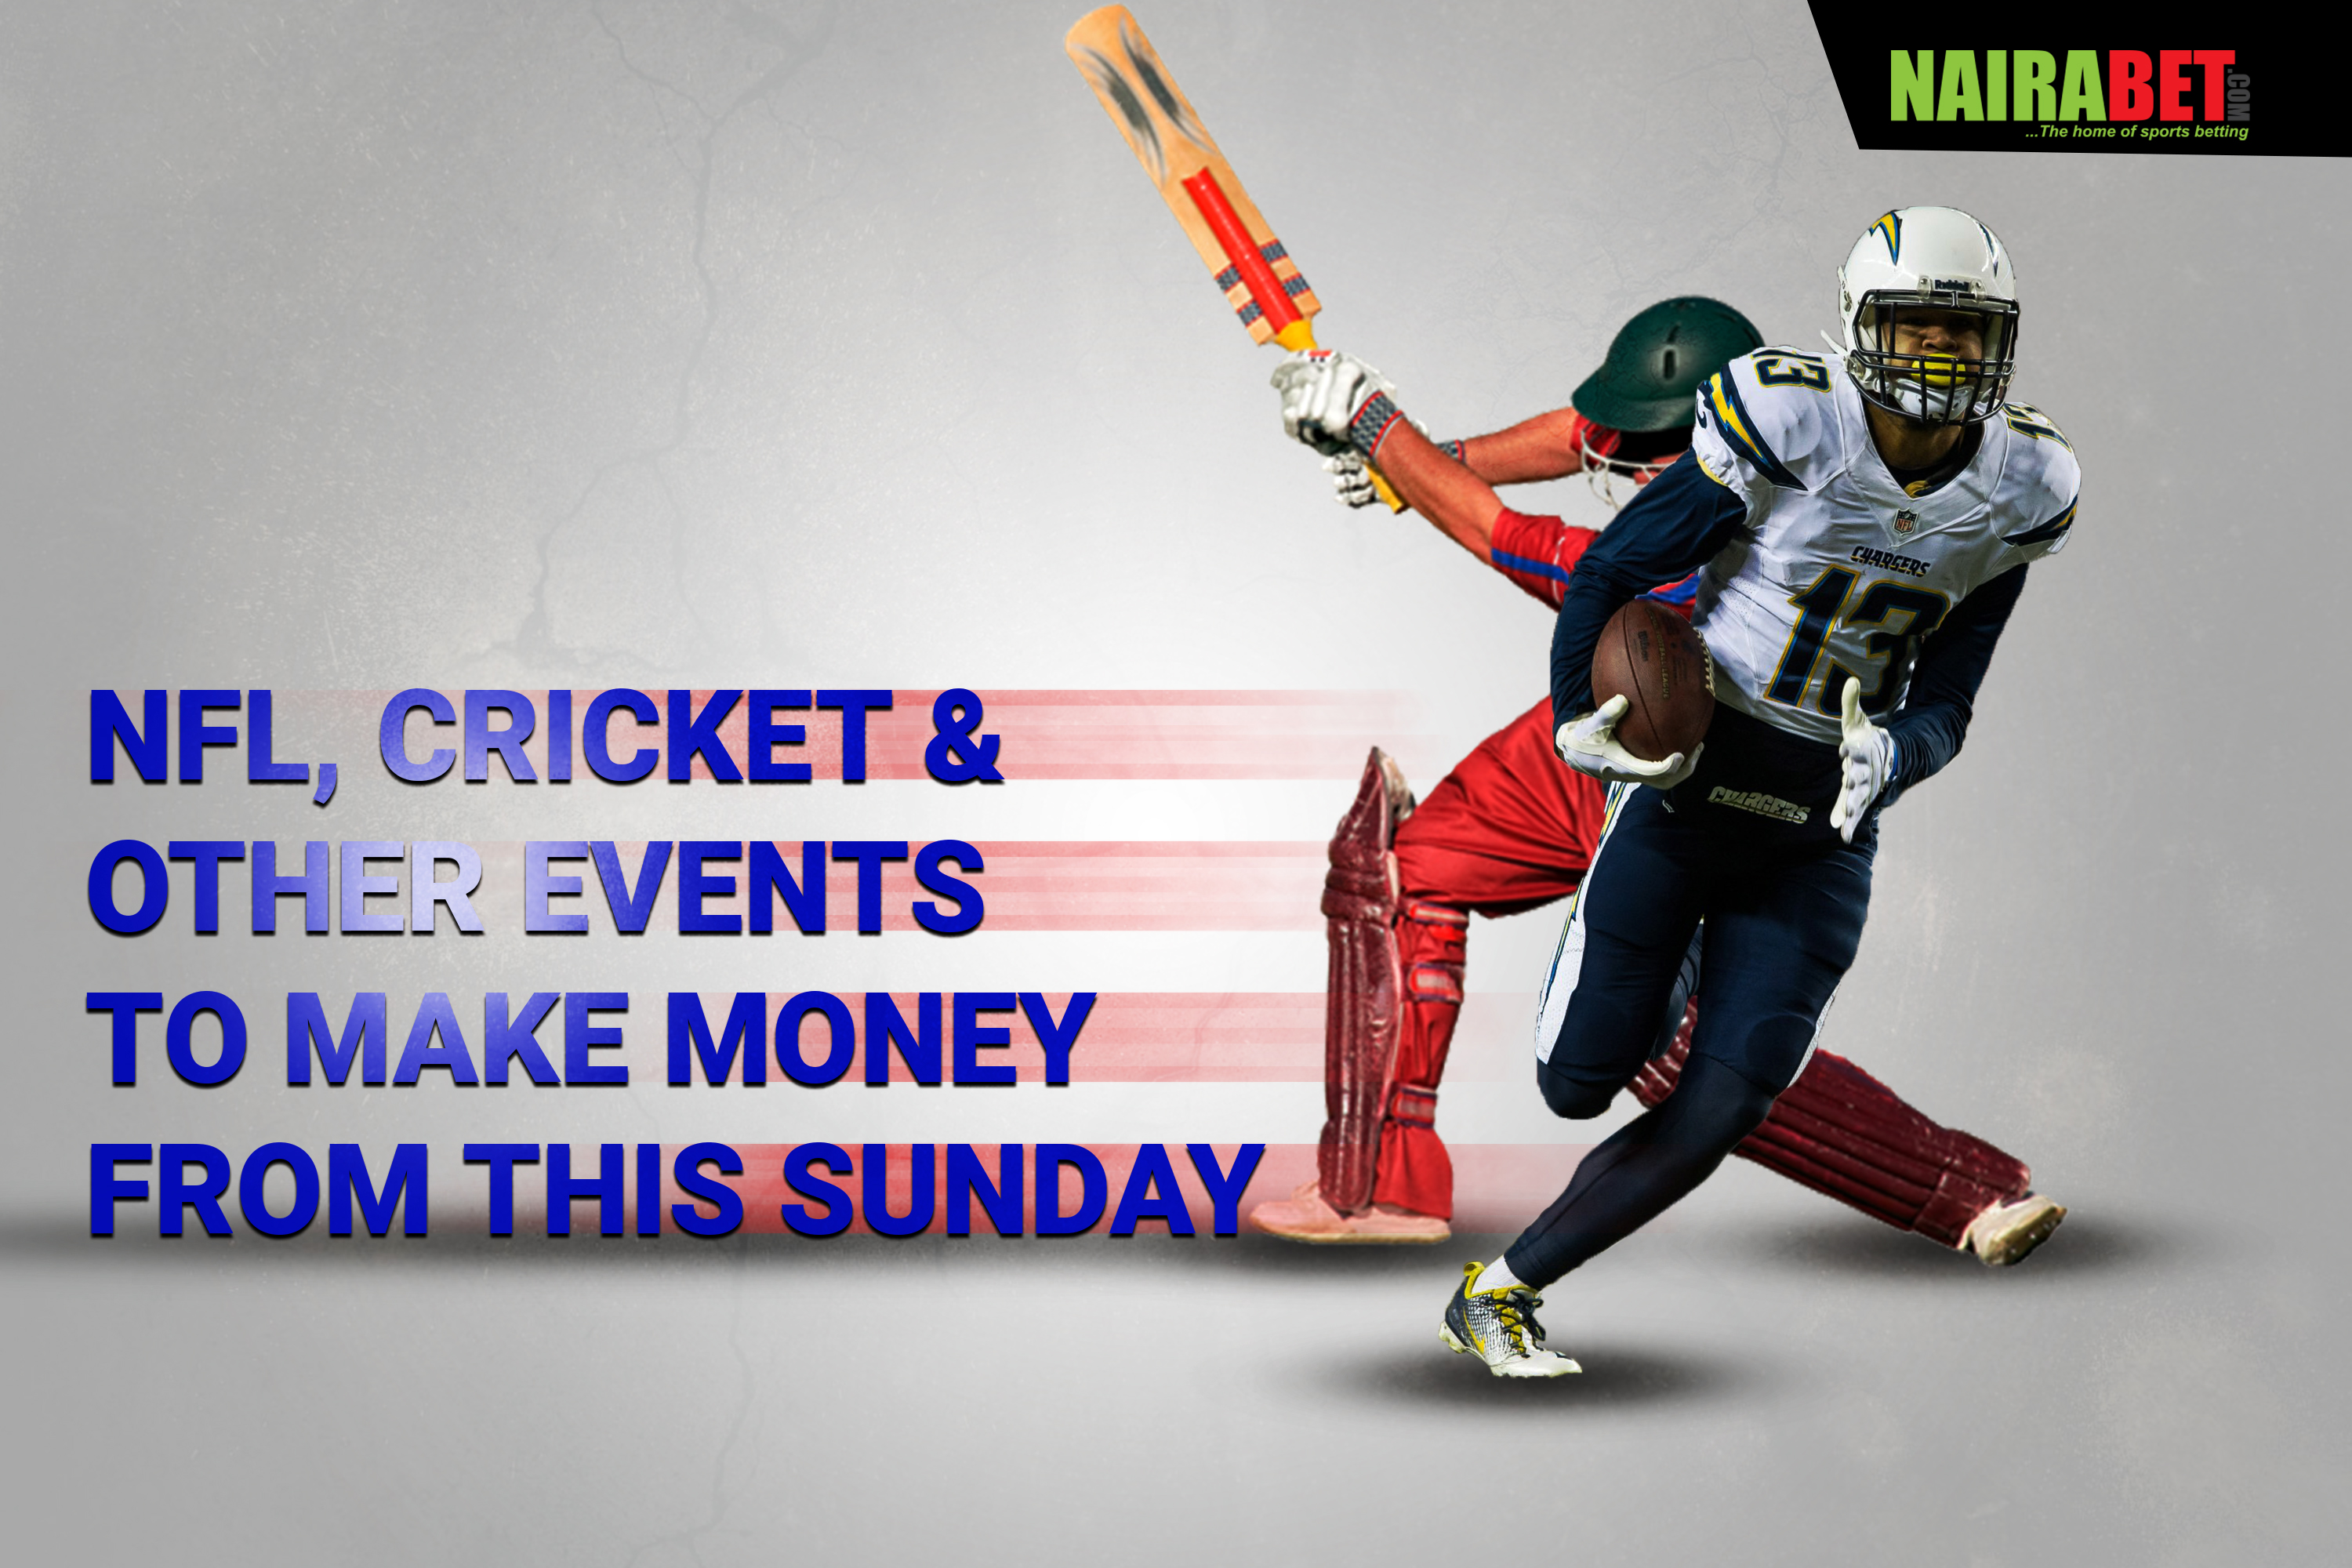 nfl, cricket and other sunday games